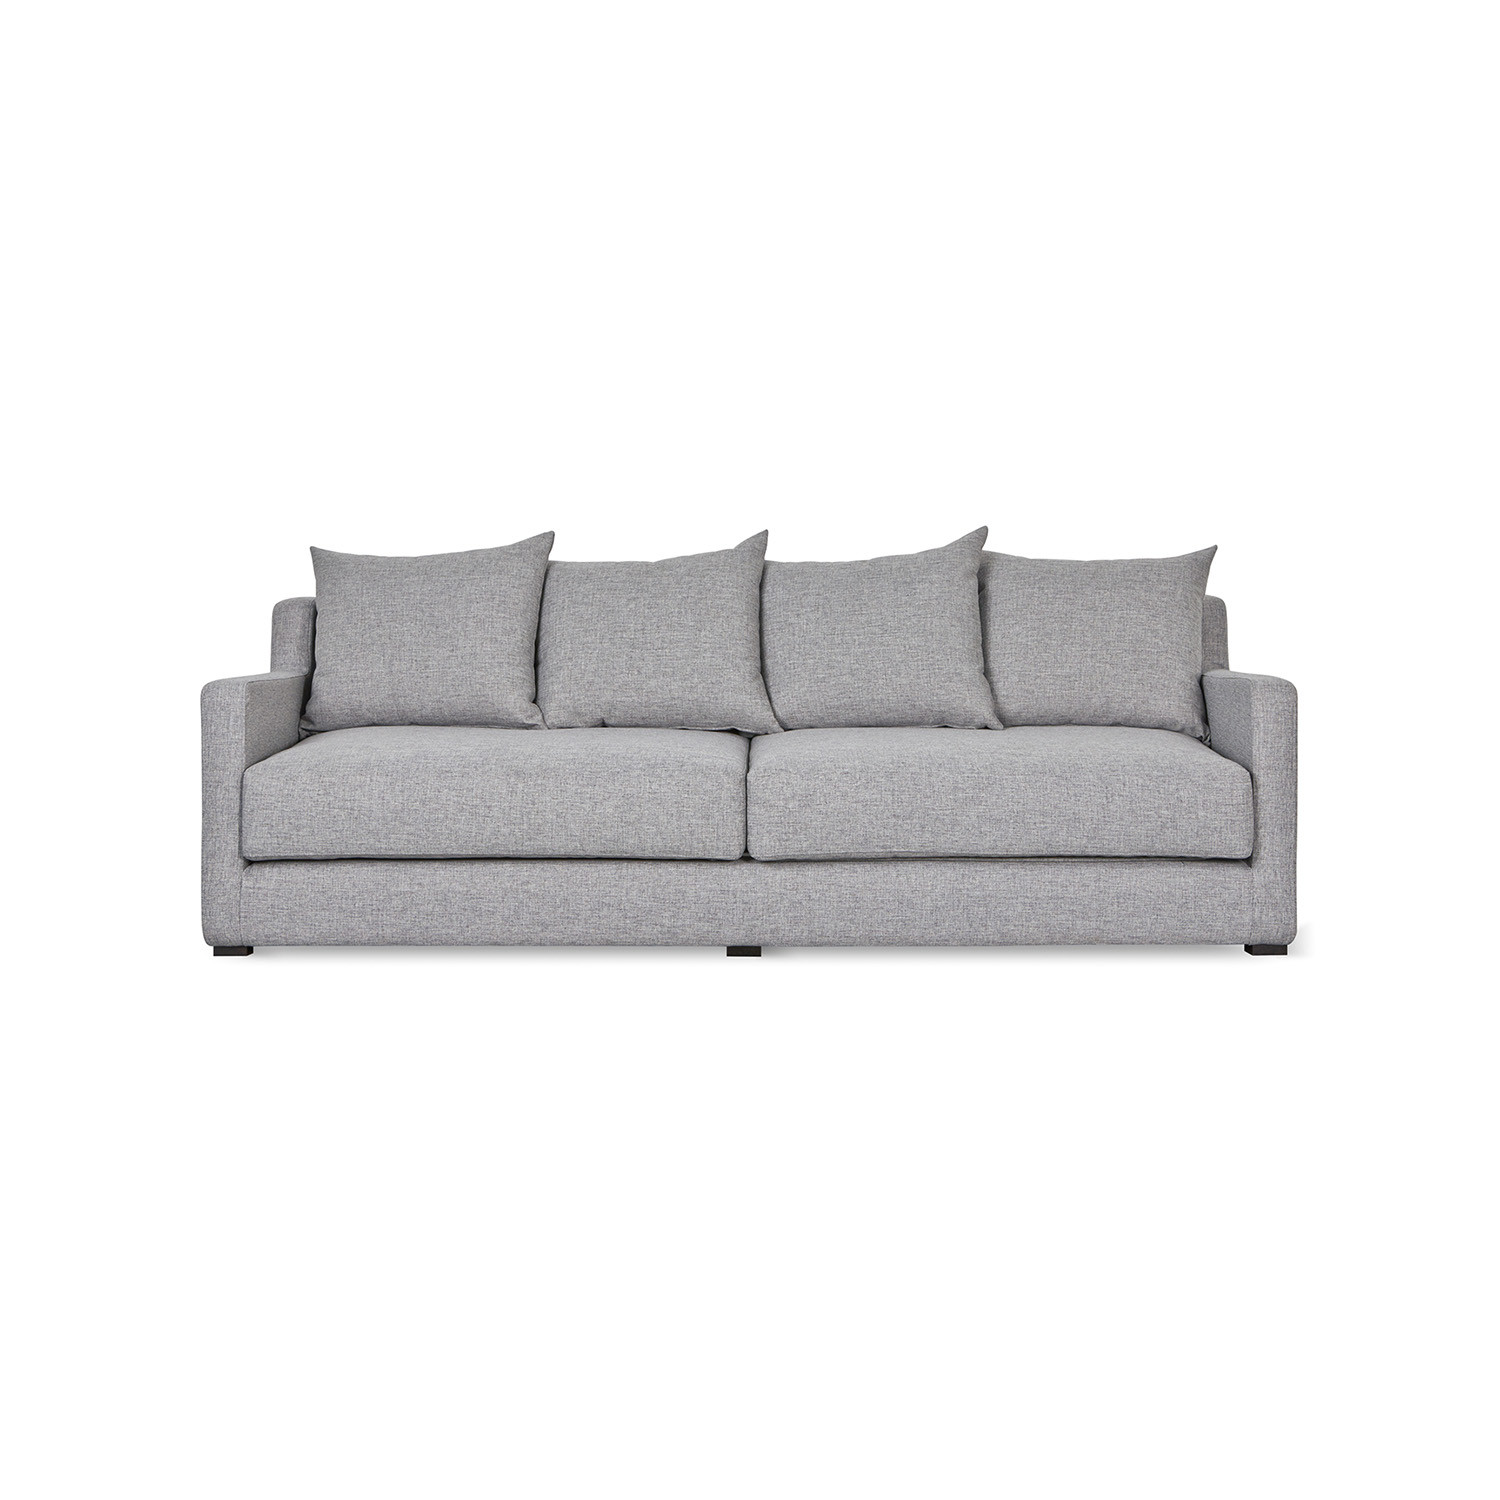 gus modern sofa sale sofas that come apart for moving flipside bed parliament stone touch